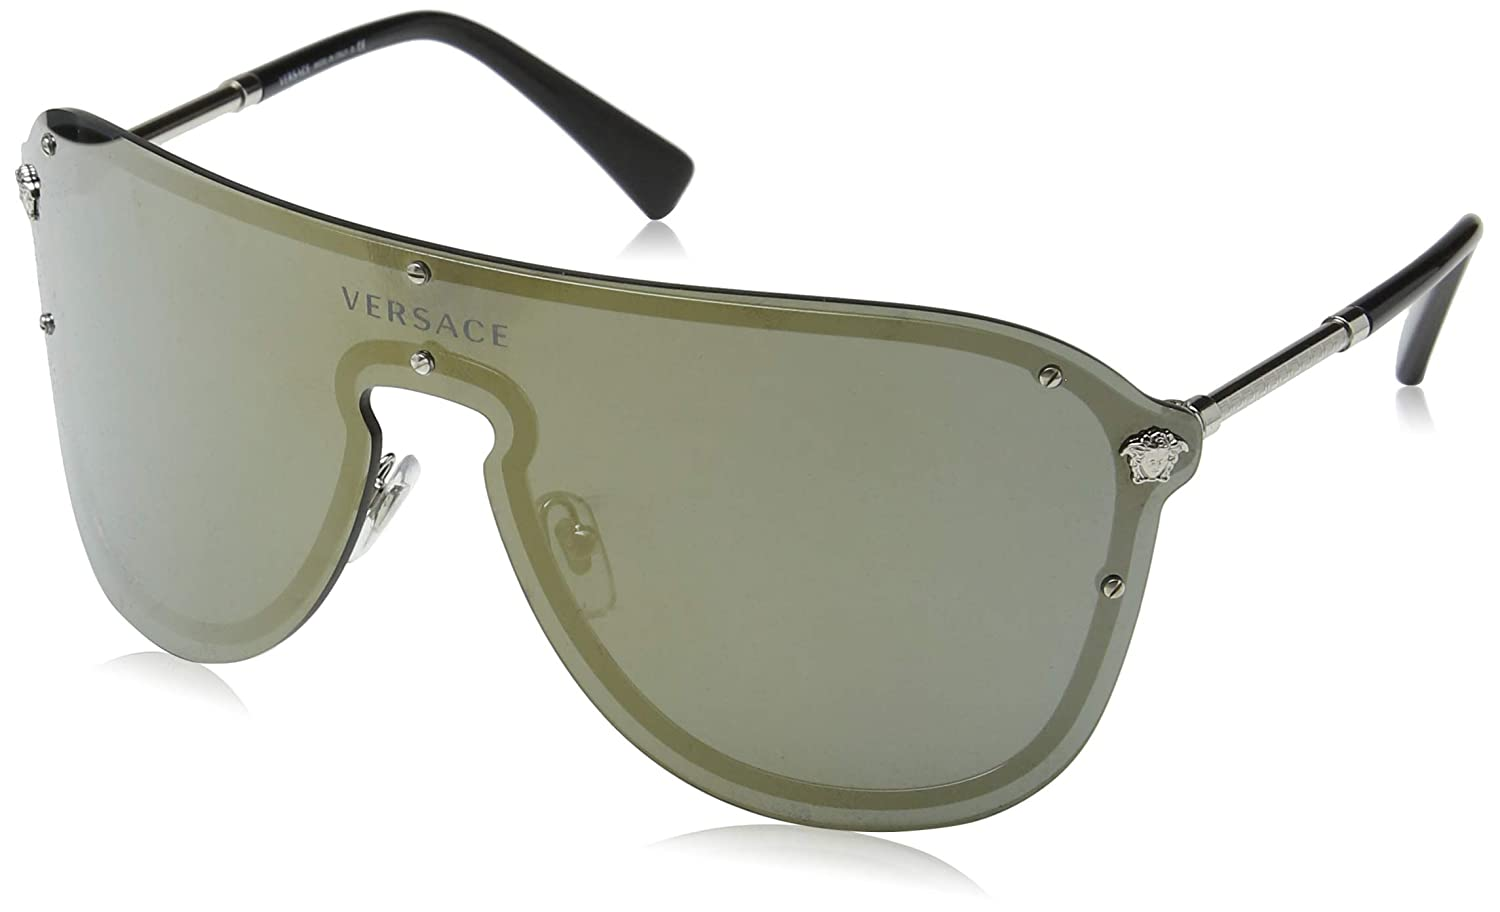 Versace Womens Mirrored Shield Sunglasses